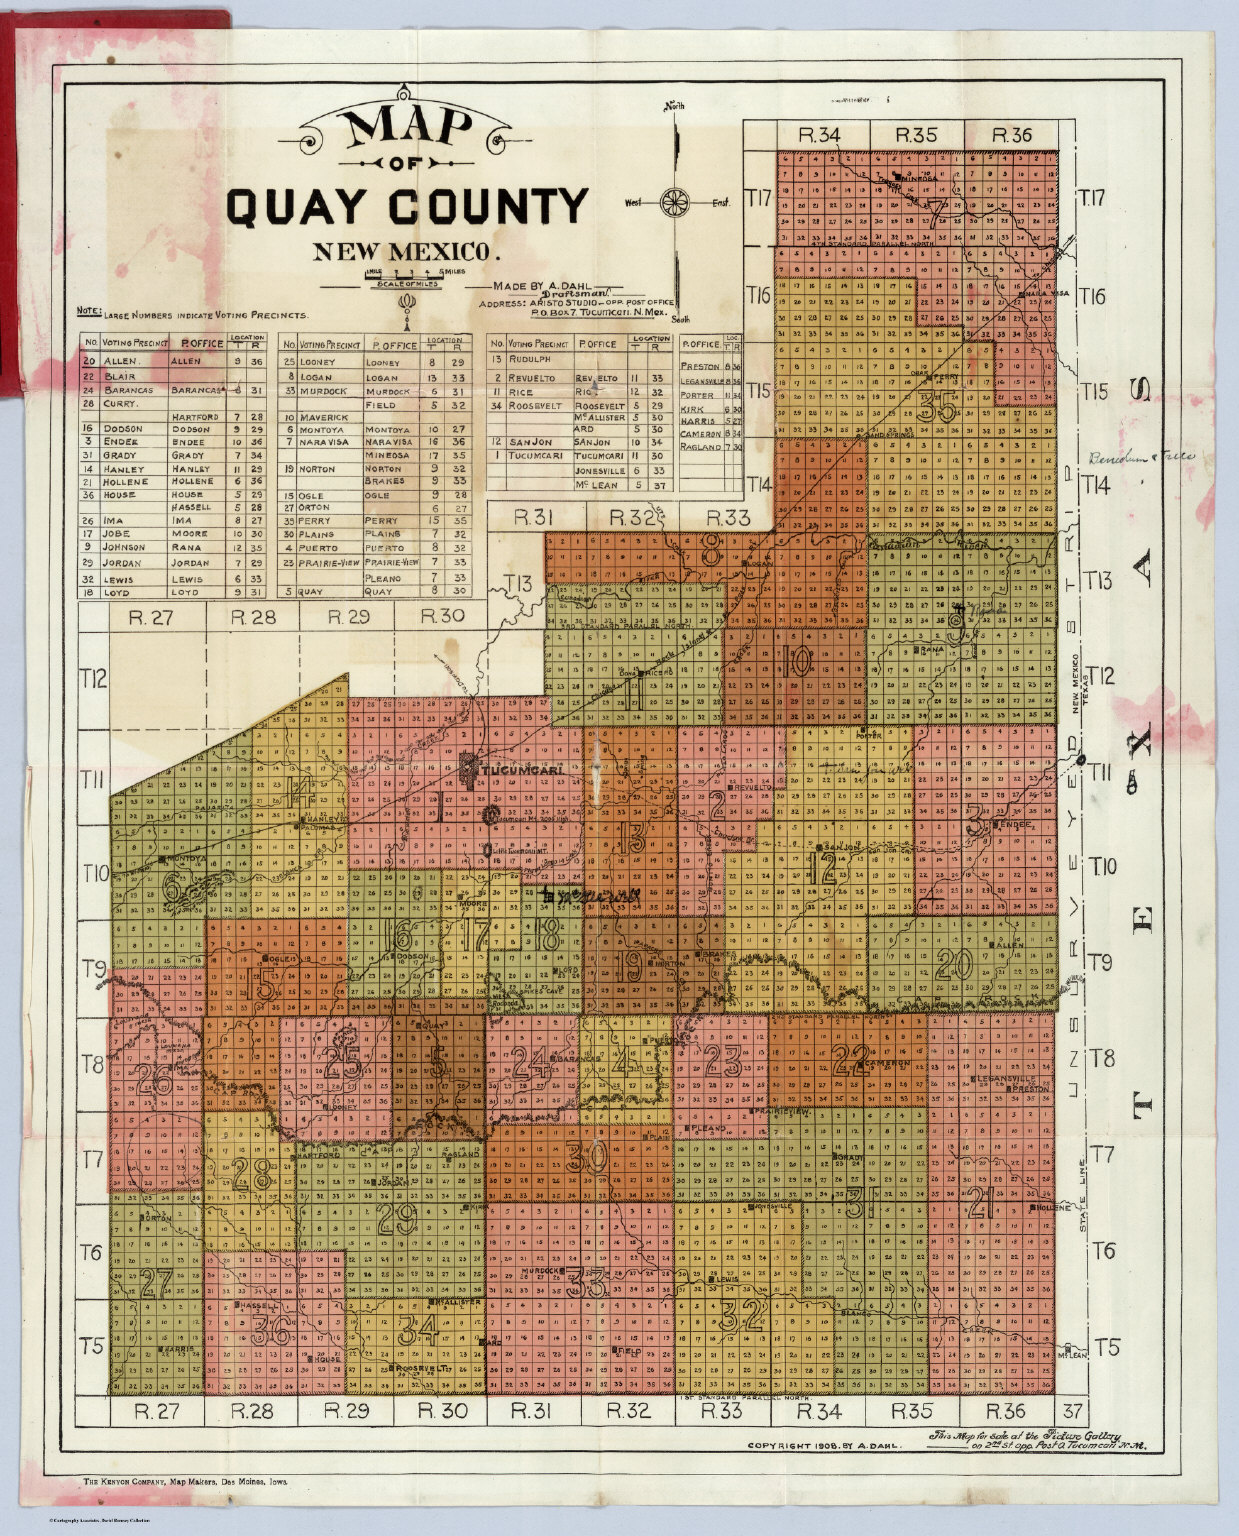 Quay County New Mexico David Rumsey Historical Map Collection